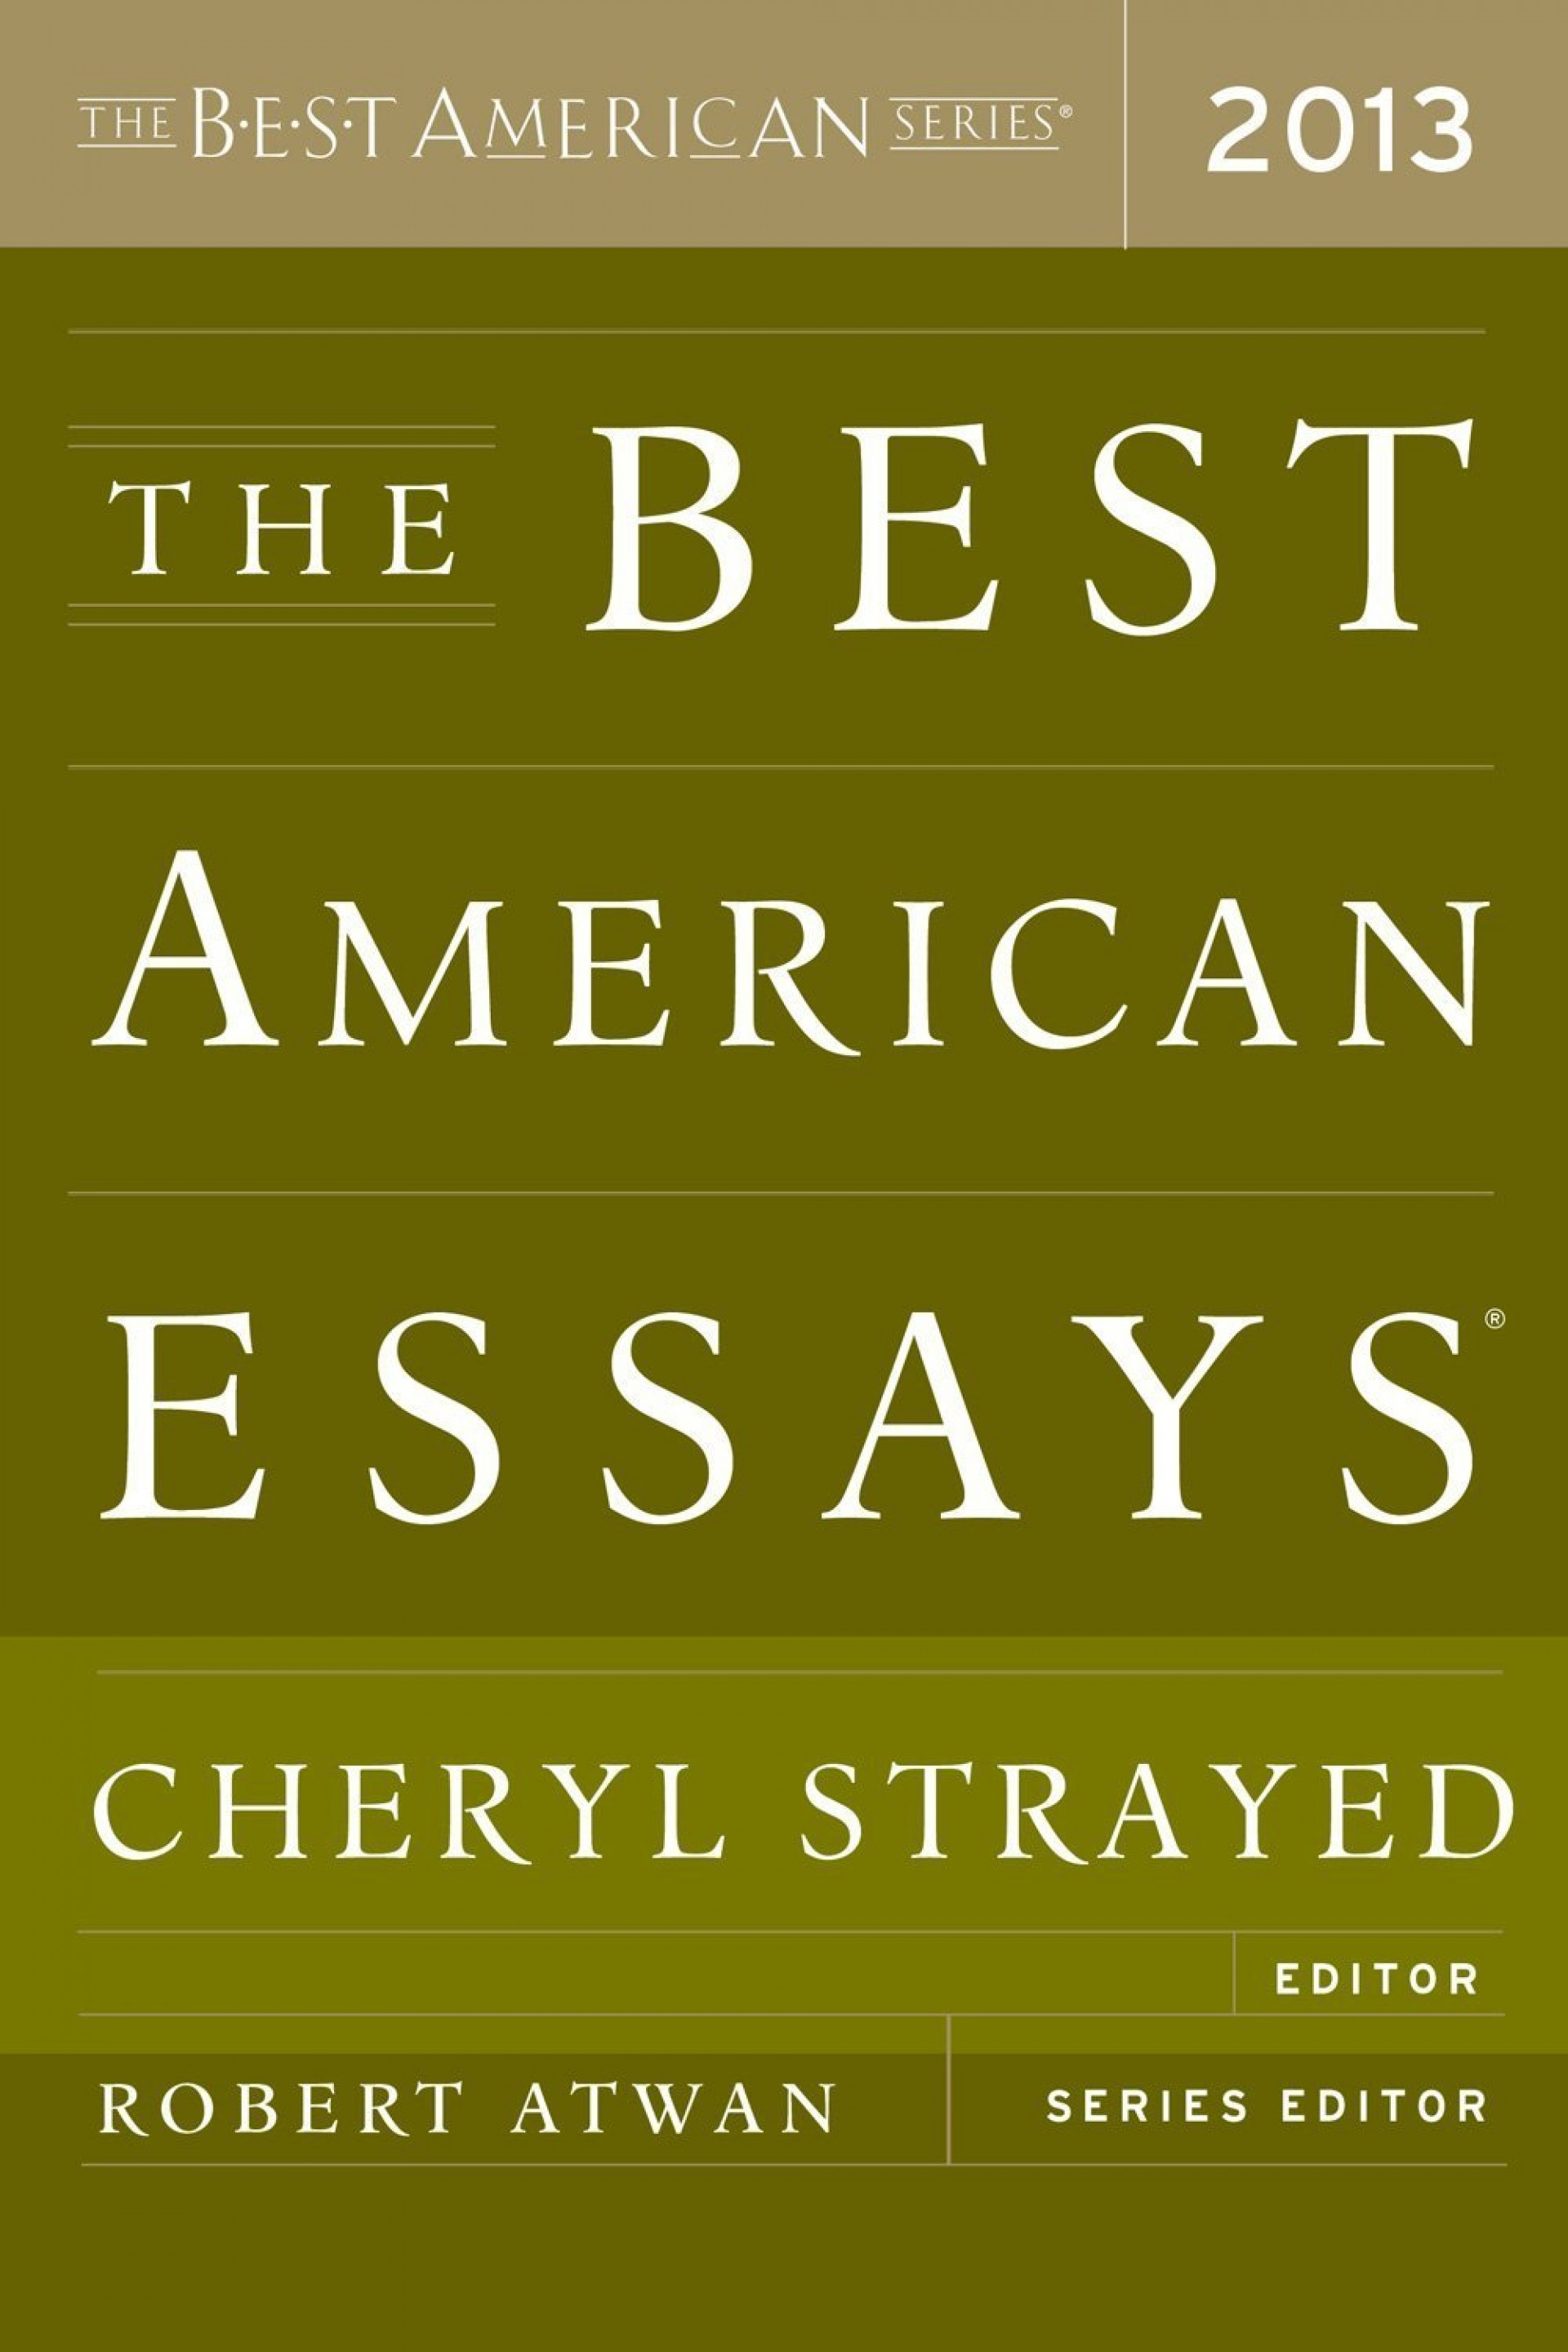 004 The Best American Essays Essay Wonderful 2013 Pdf Download Of Century Sparknotes 2017 1920